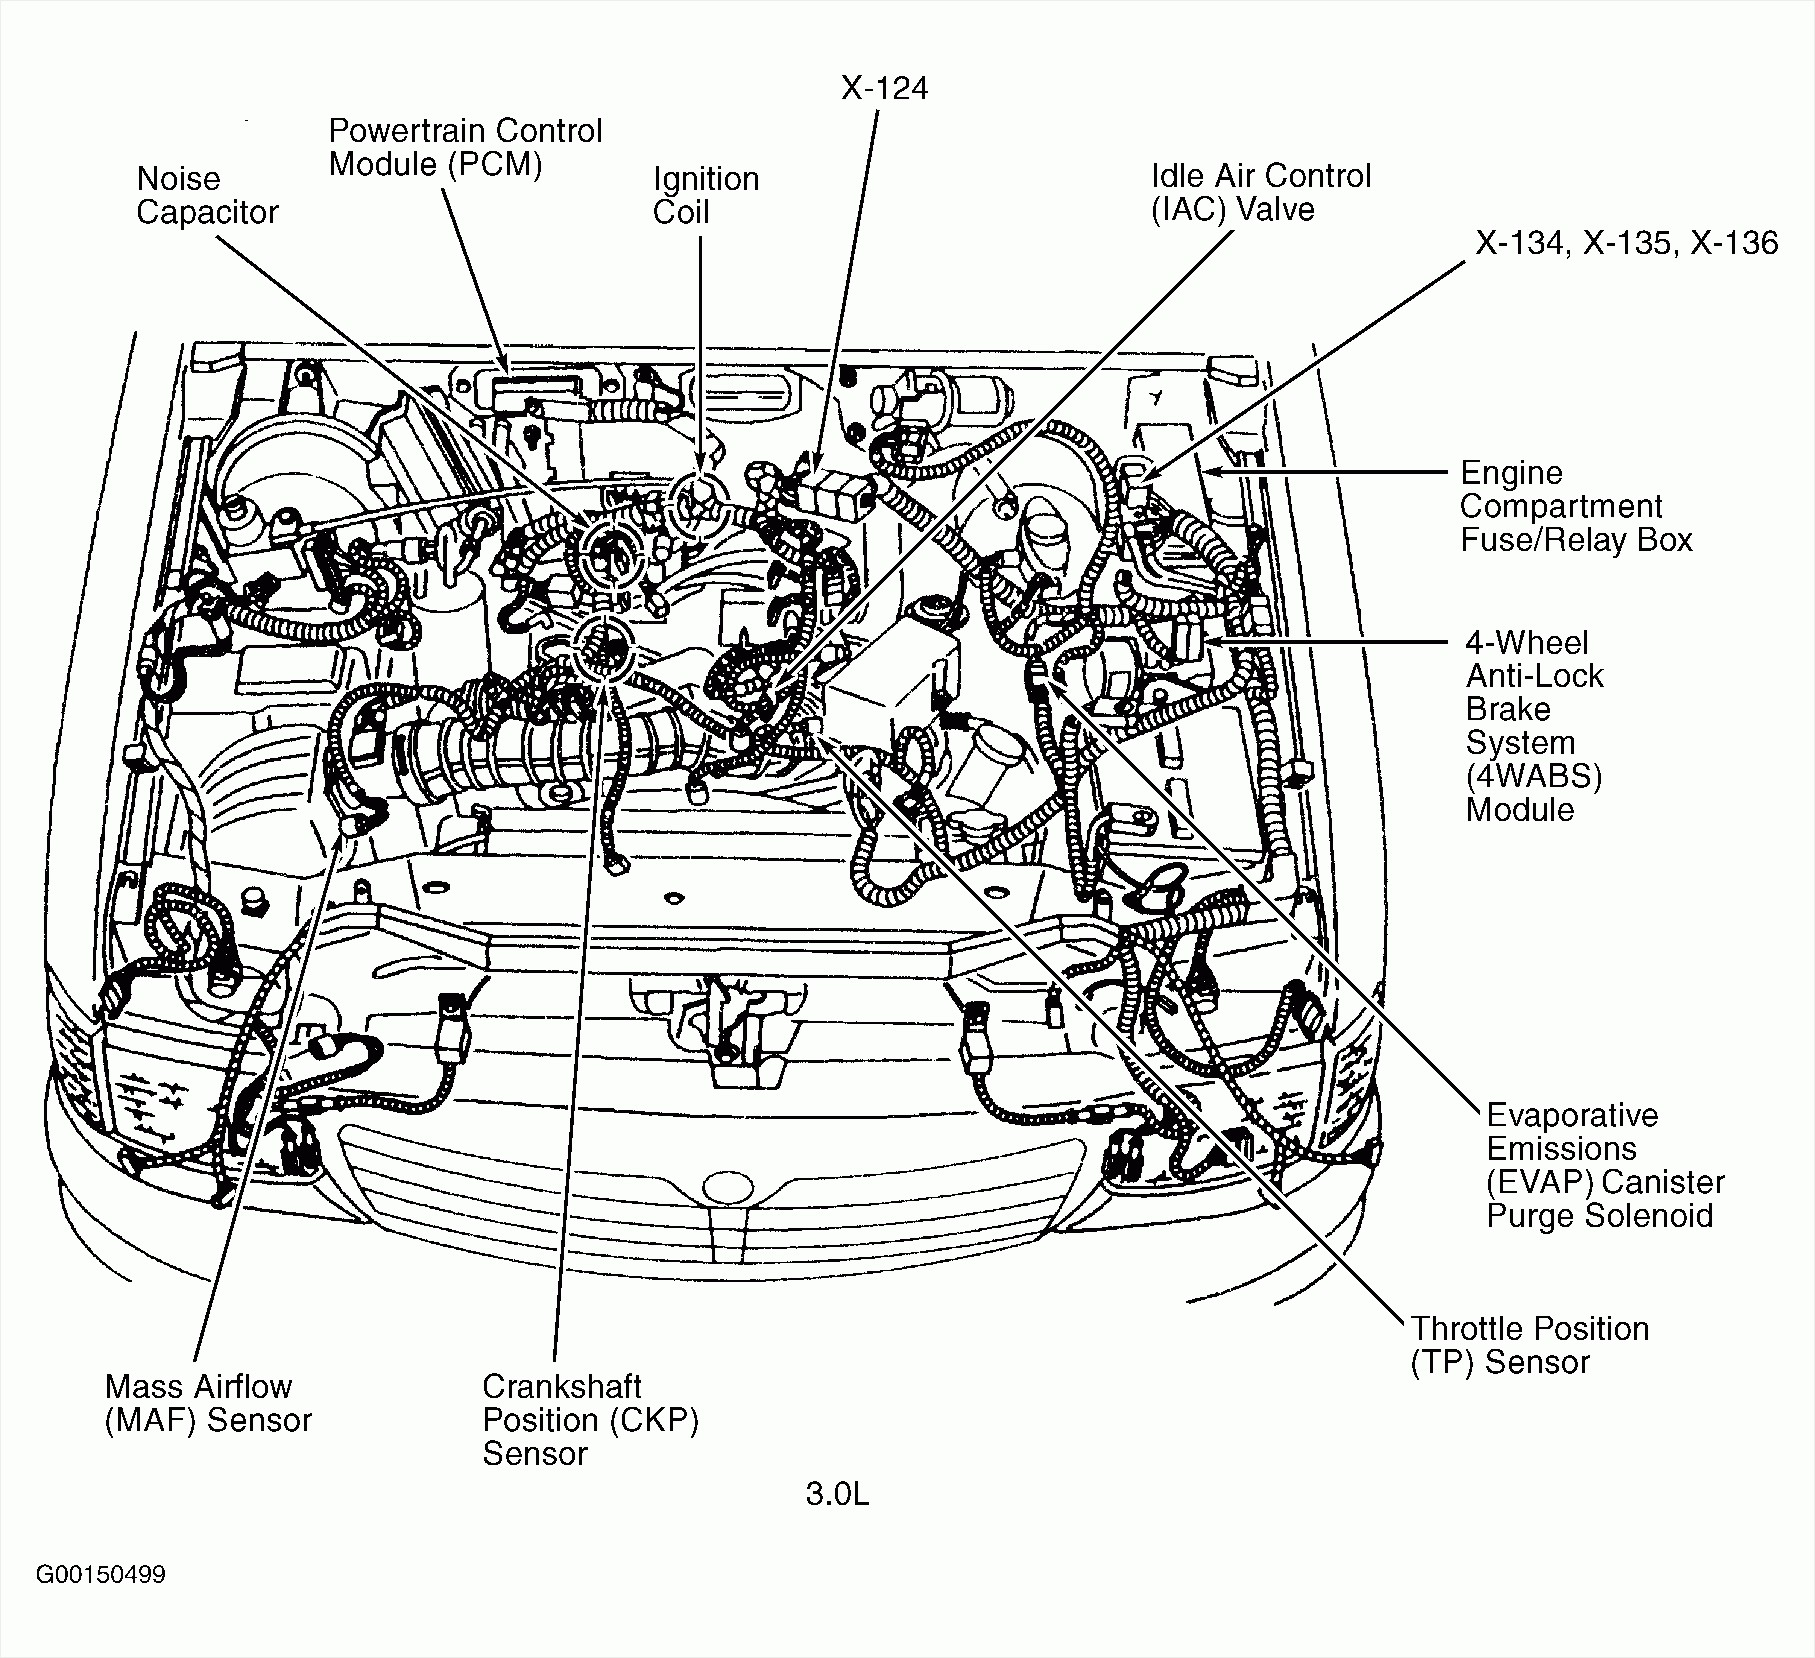 2008 Ford Escape Parts Diagram My Wiring Sel 2004 Mazda 6 Engine Chart Gallery 7 Pics For Automotive V6